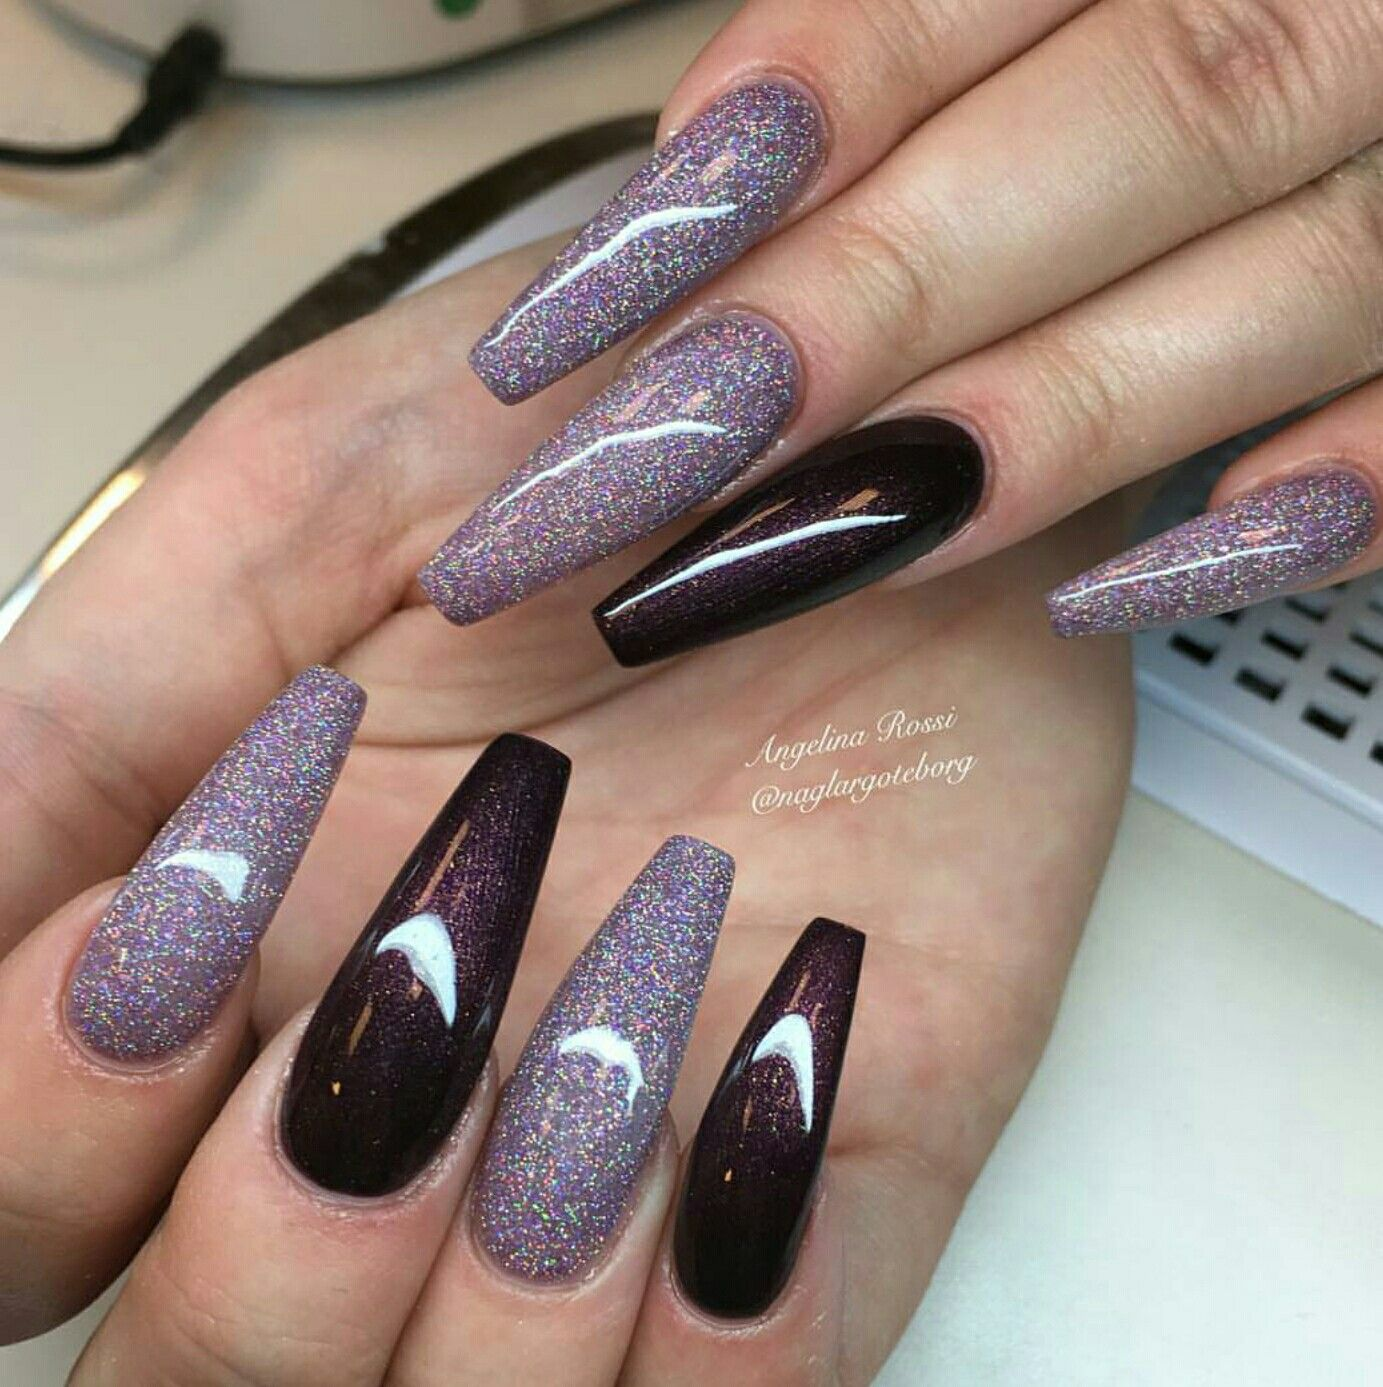 Pin by Ginnie Walters on Acrylic Nail Designs | Pinterest | Coffin ...